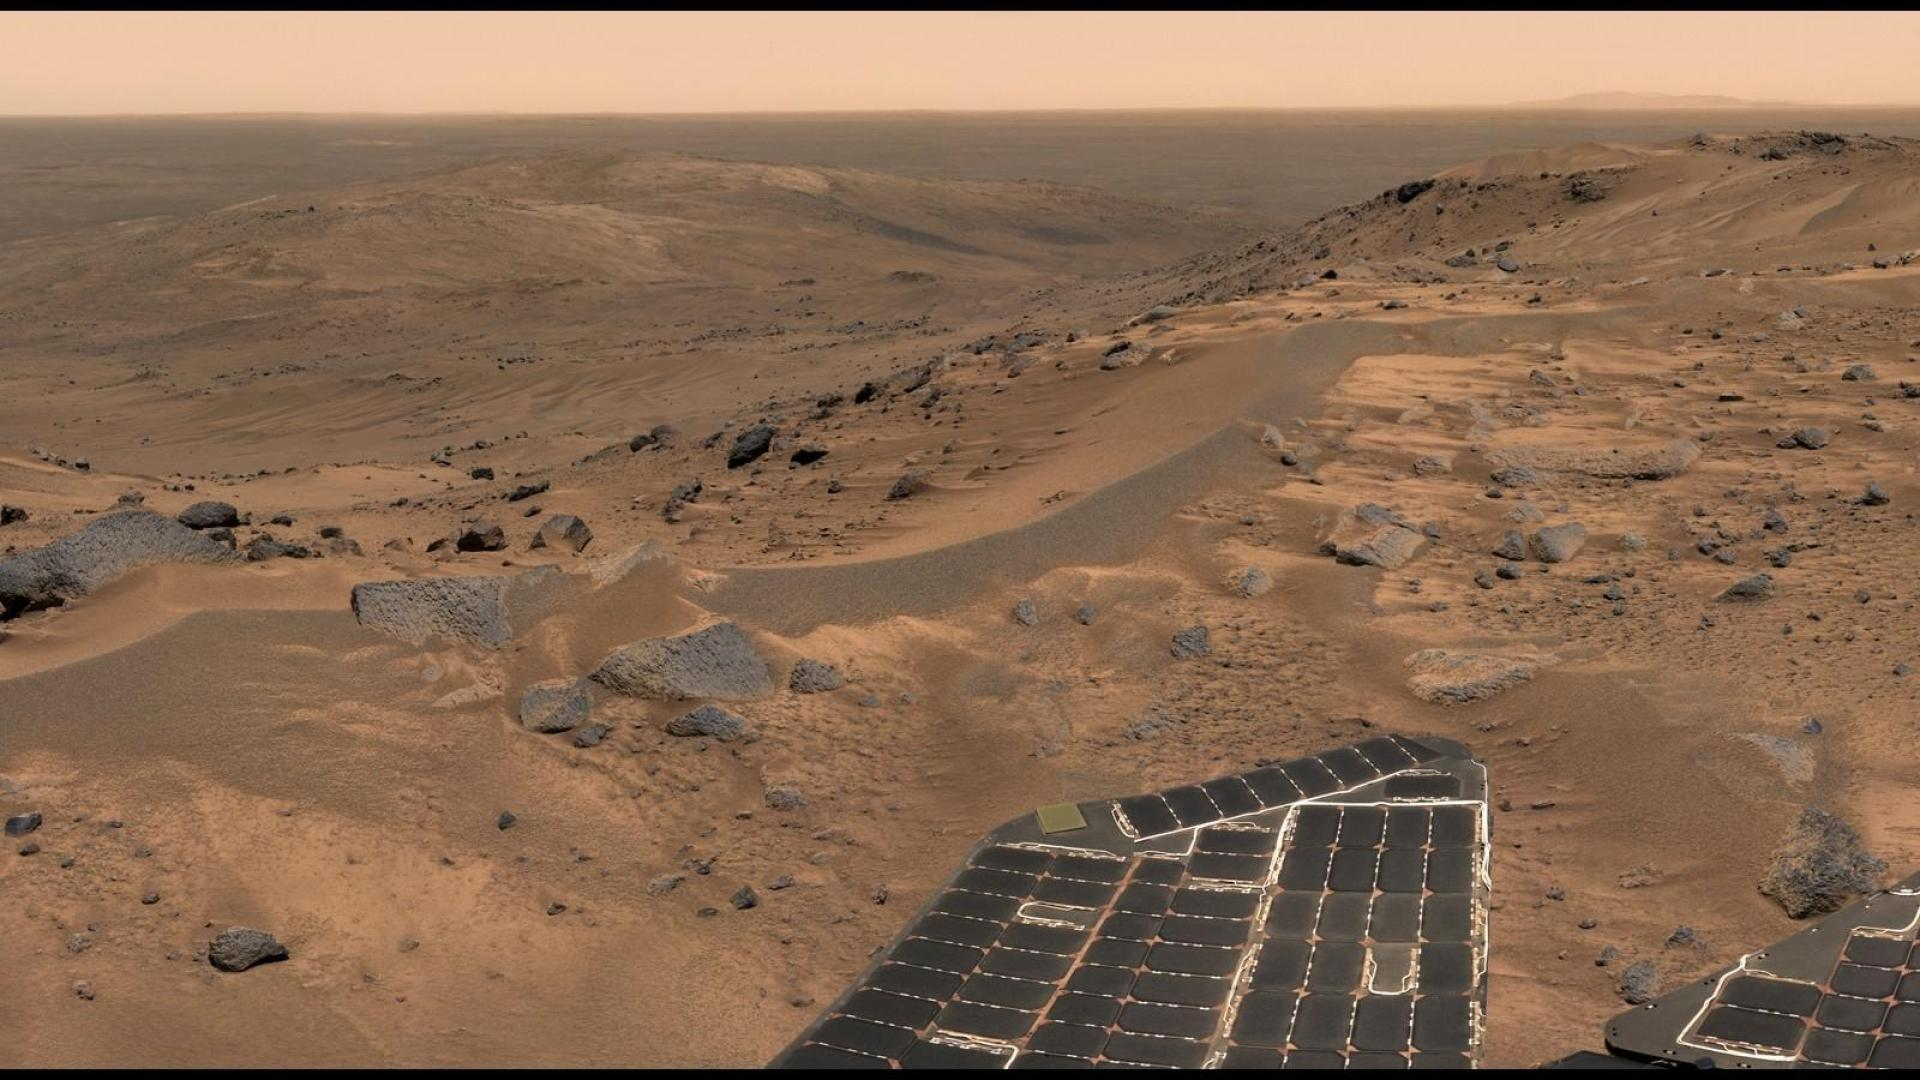 mars rover pictures hd - photo #37